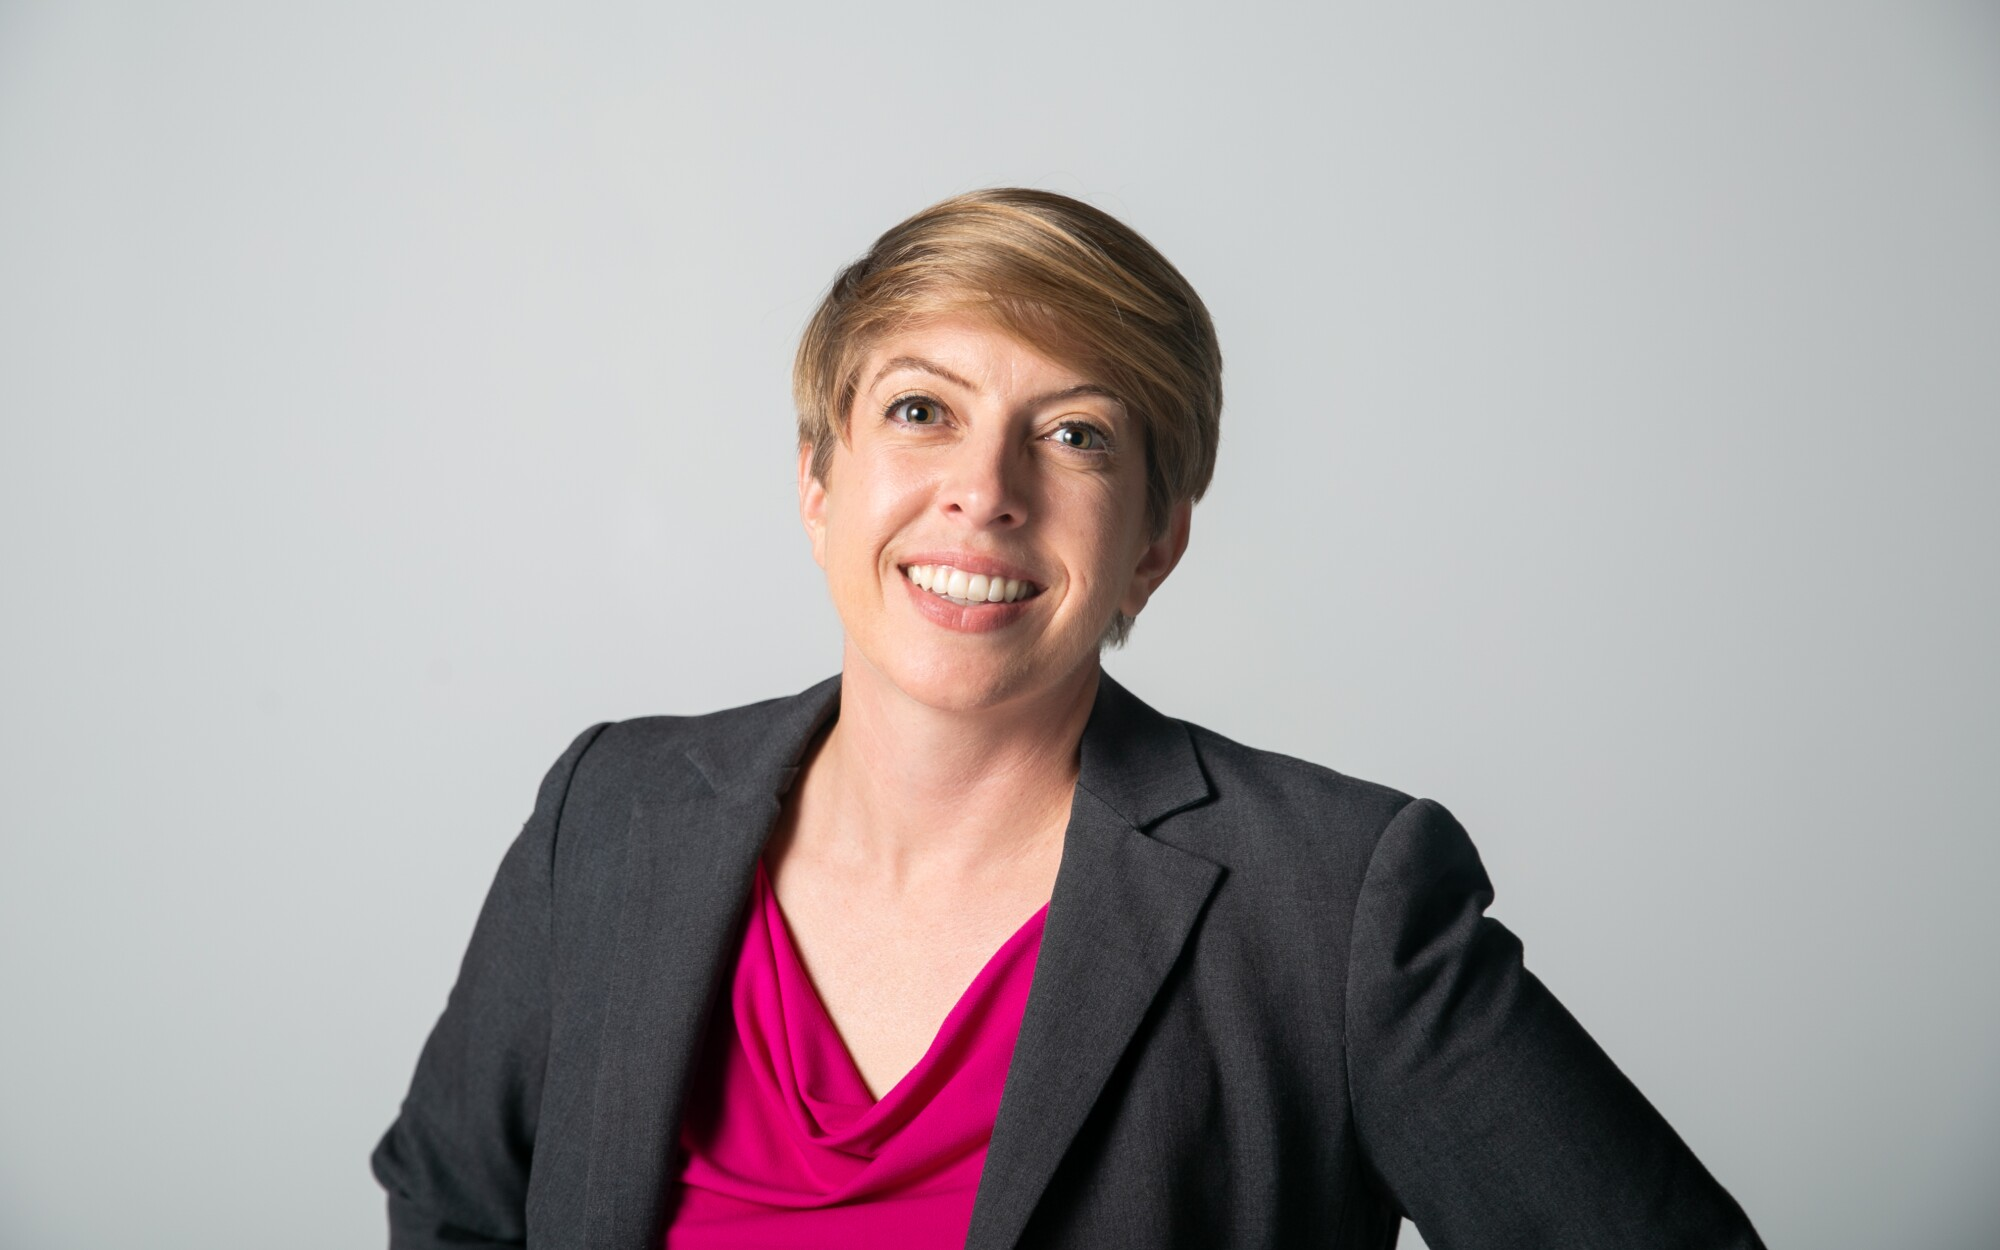 Marni von Wilpert, a candidate for City Council in District 5.